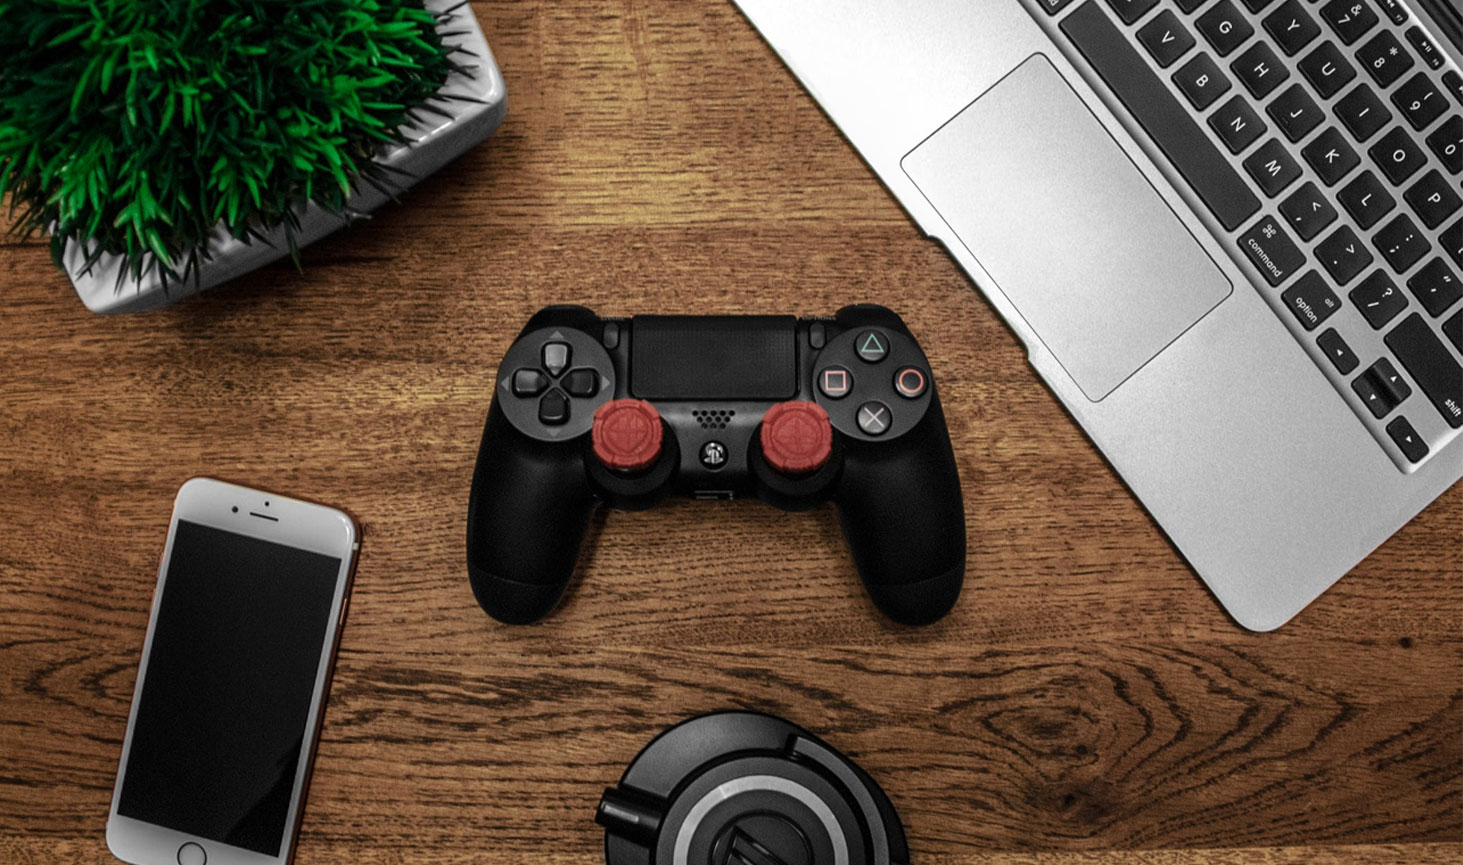 PS4 to Laptop?